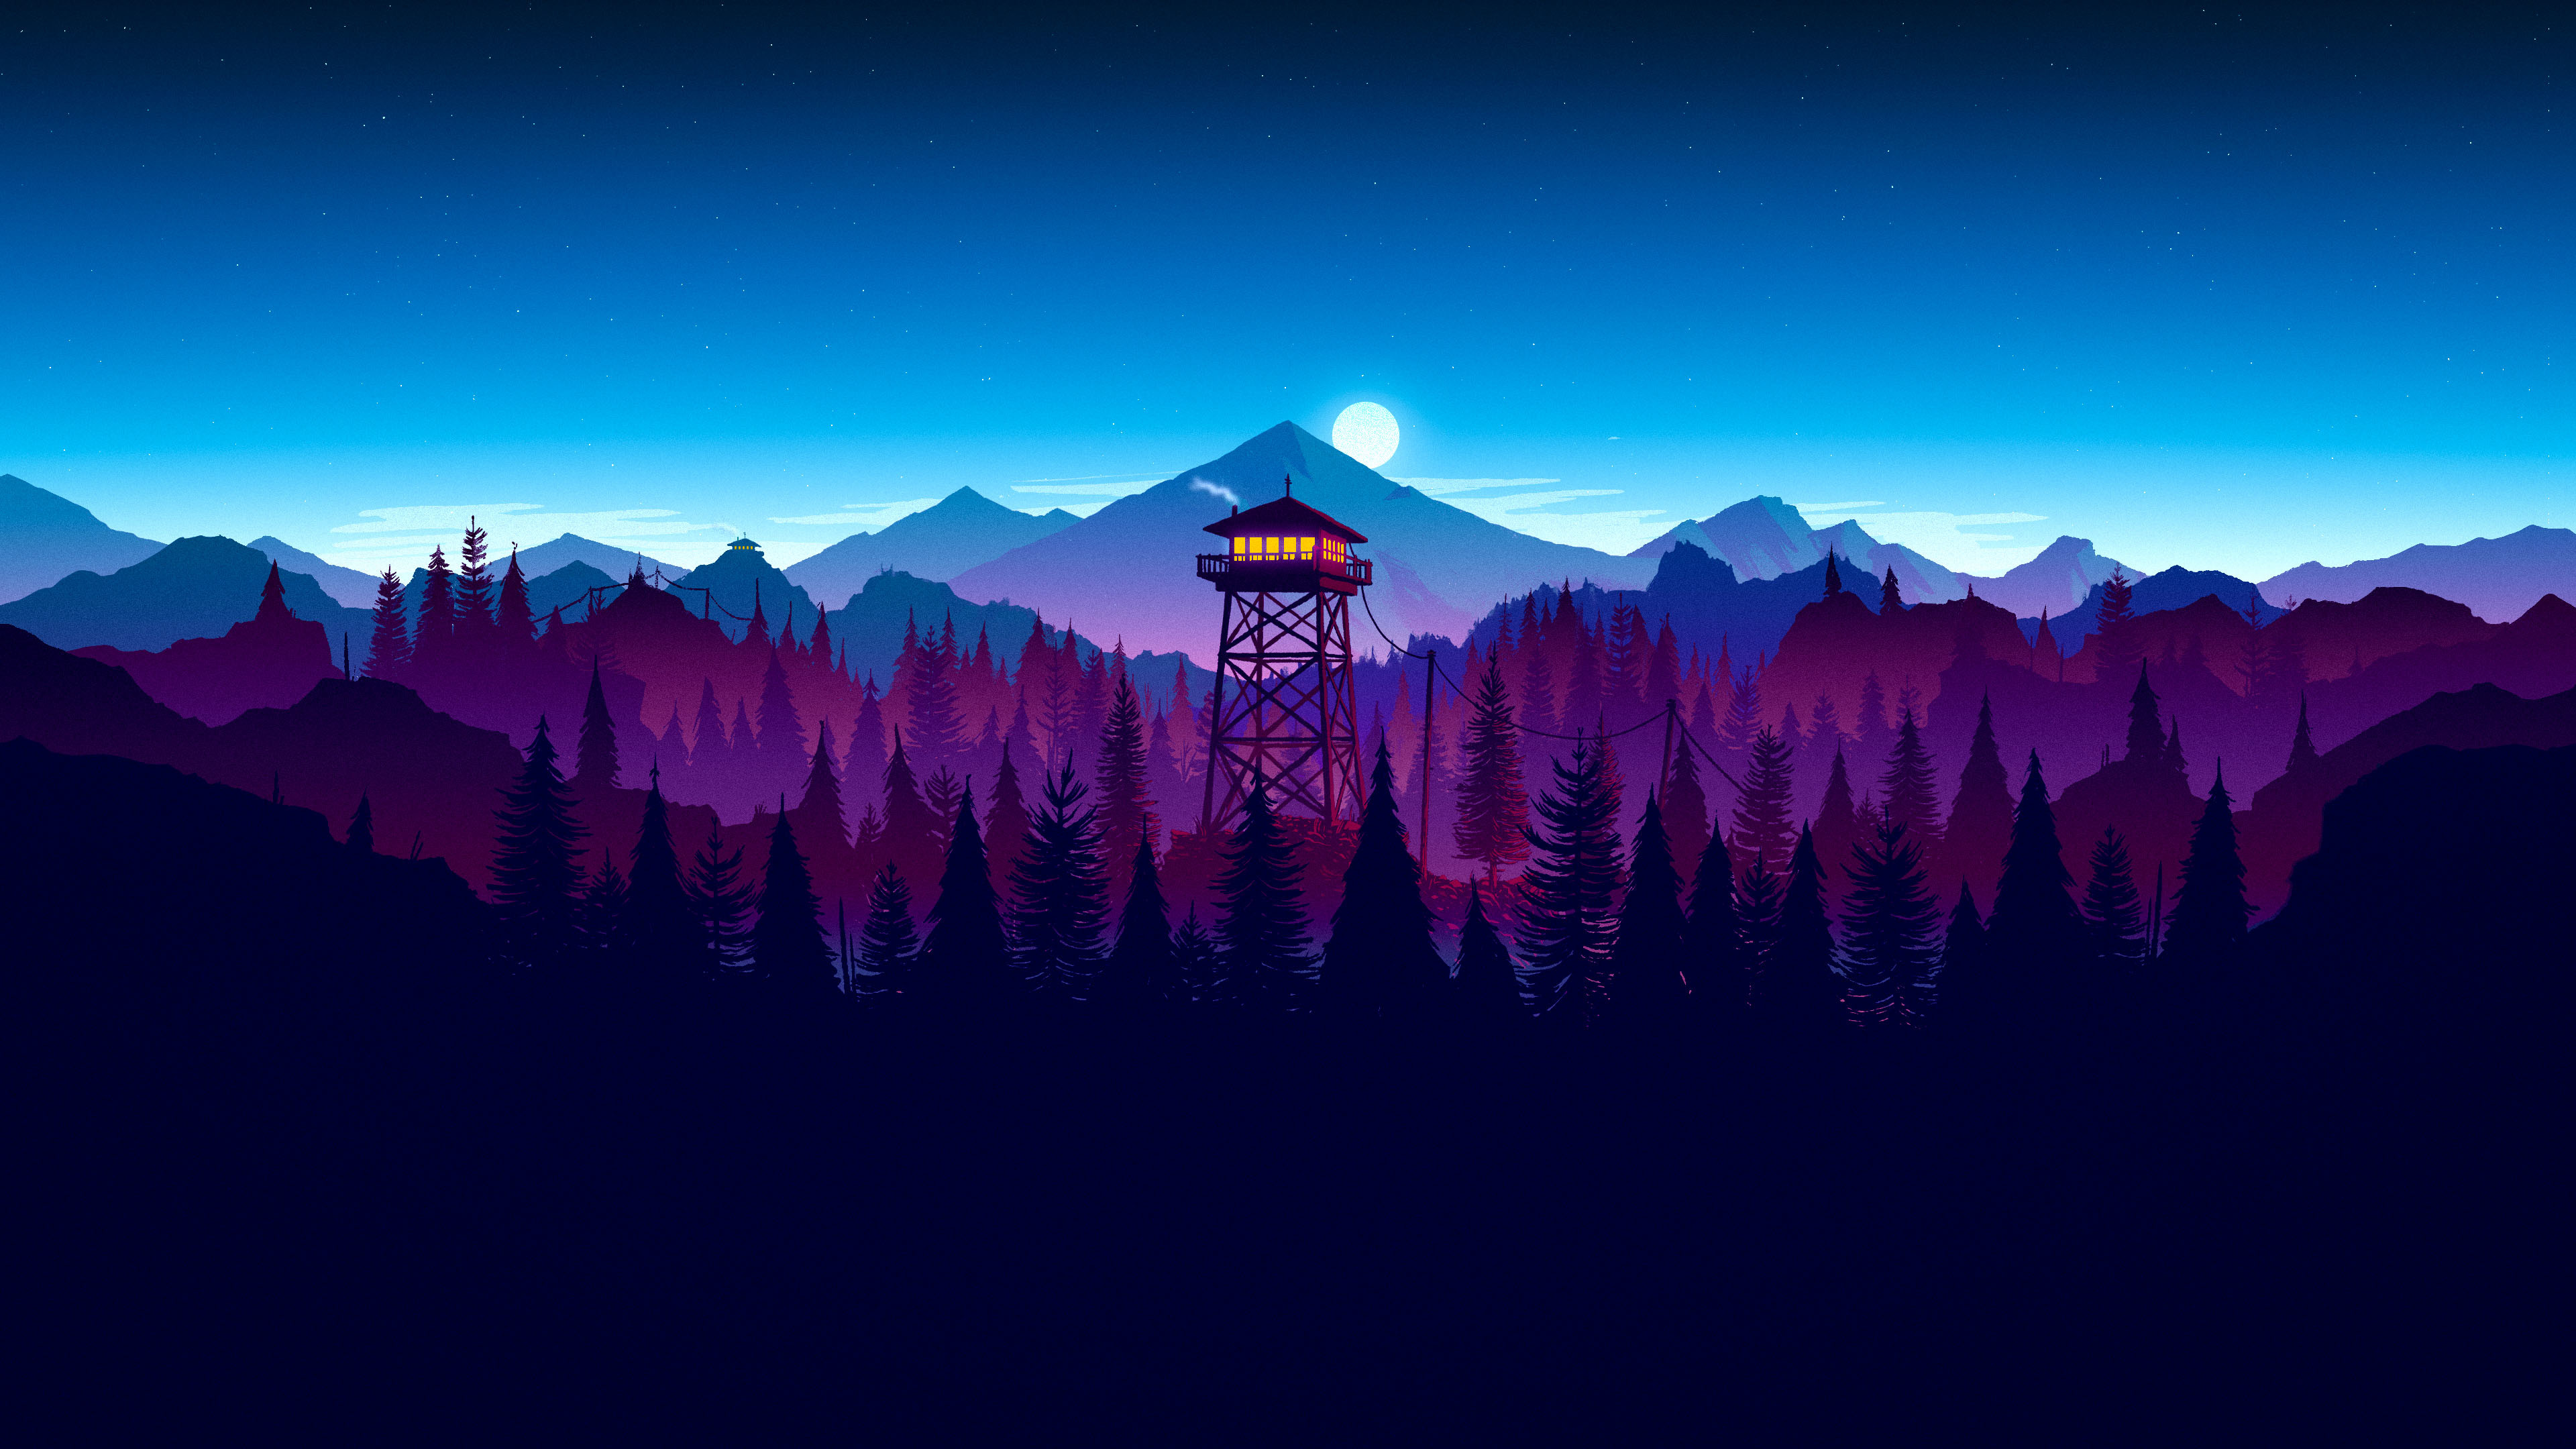 3840x2160 firewatch-night-widescreen-wallpaper-59155-60939-hd-wallpapers